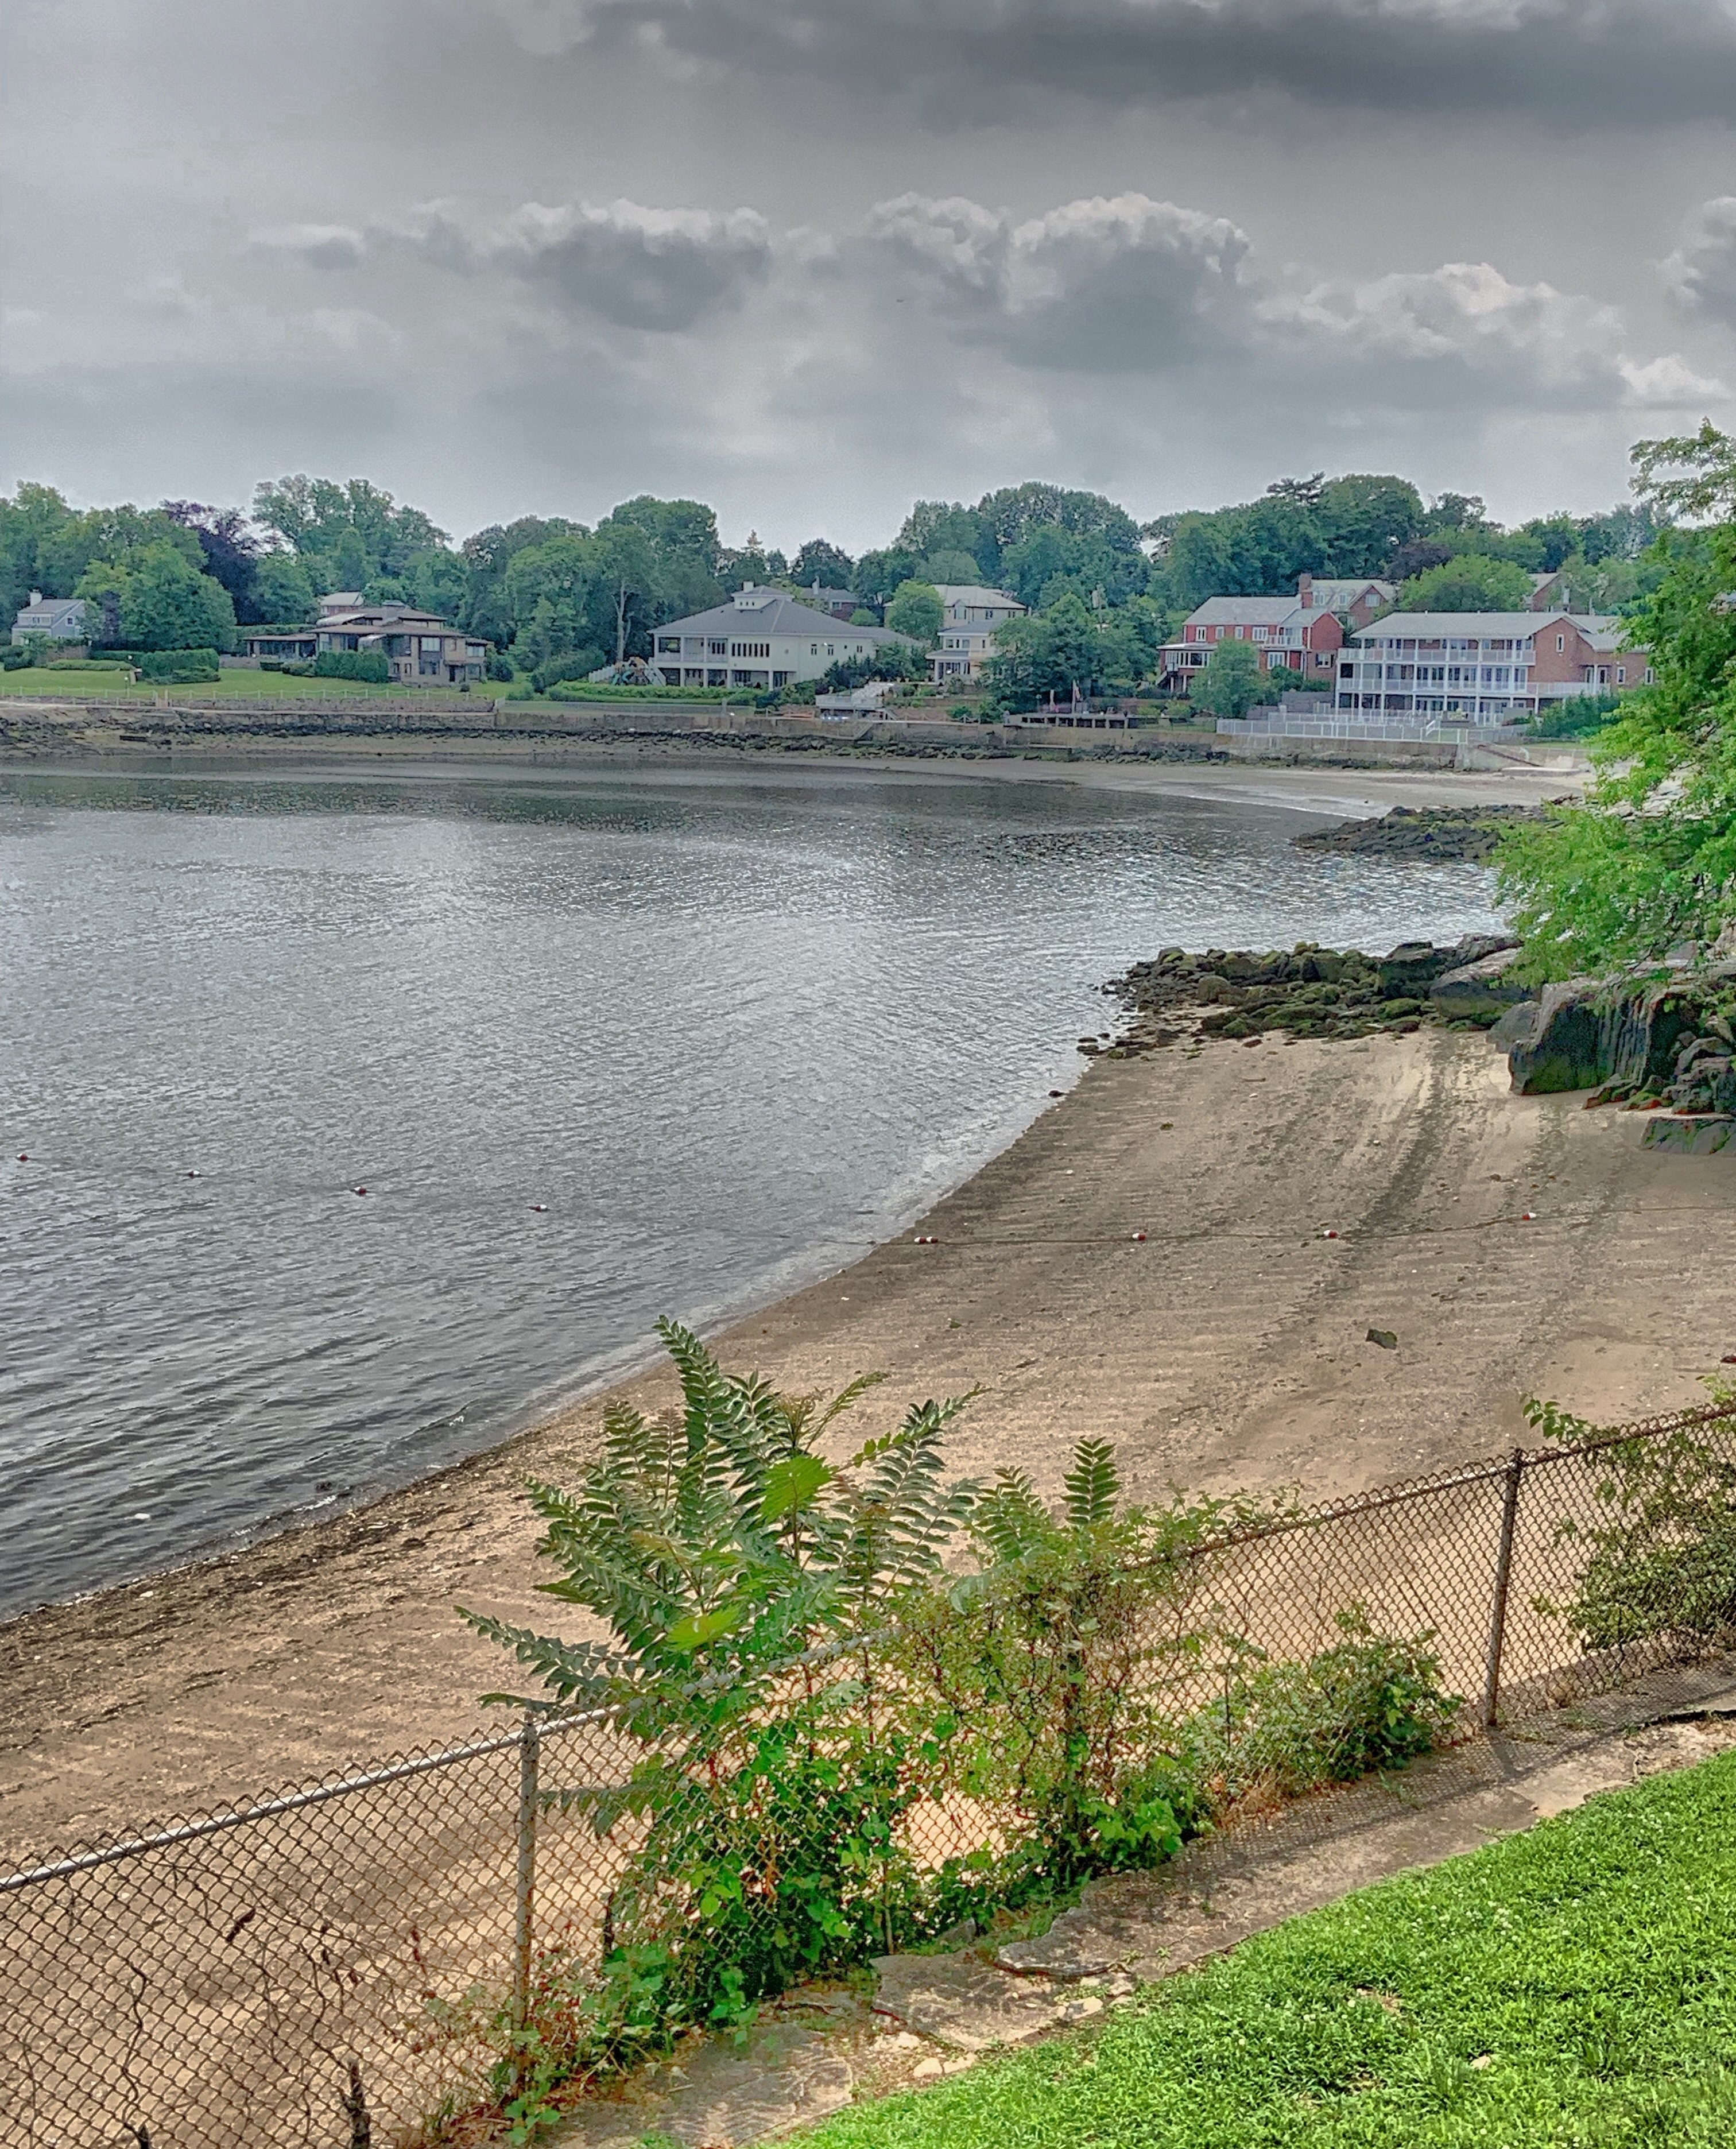 Hudson Park and Beach, New Rochelle, New York, United States of America